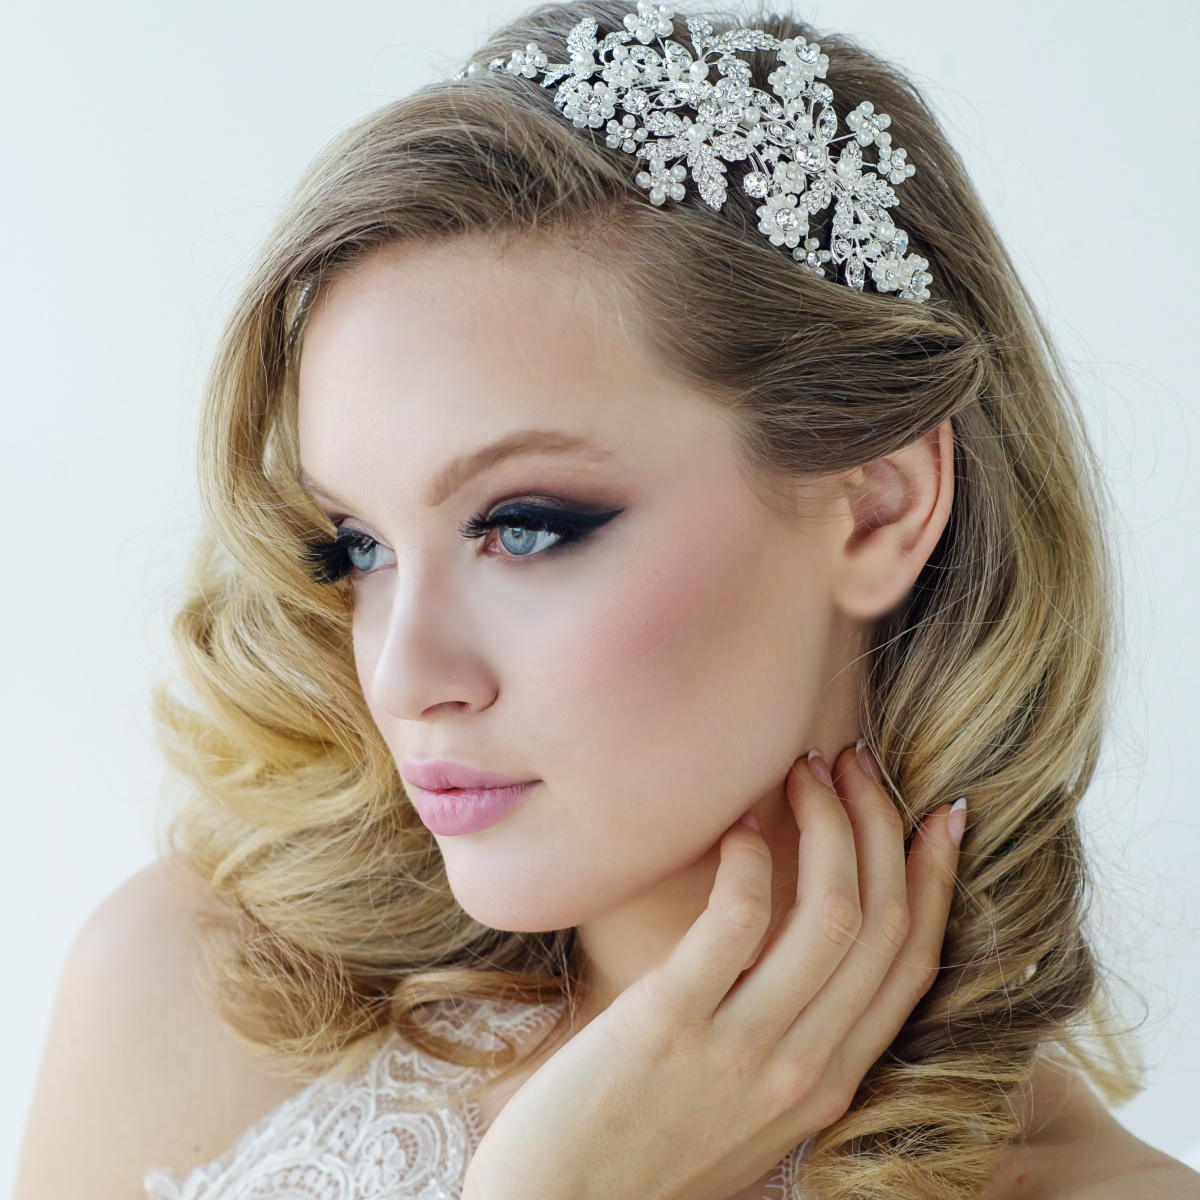 crystal bridal headbands | pearl wedding headbands - page 2